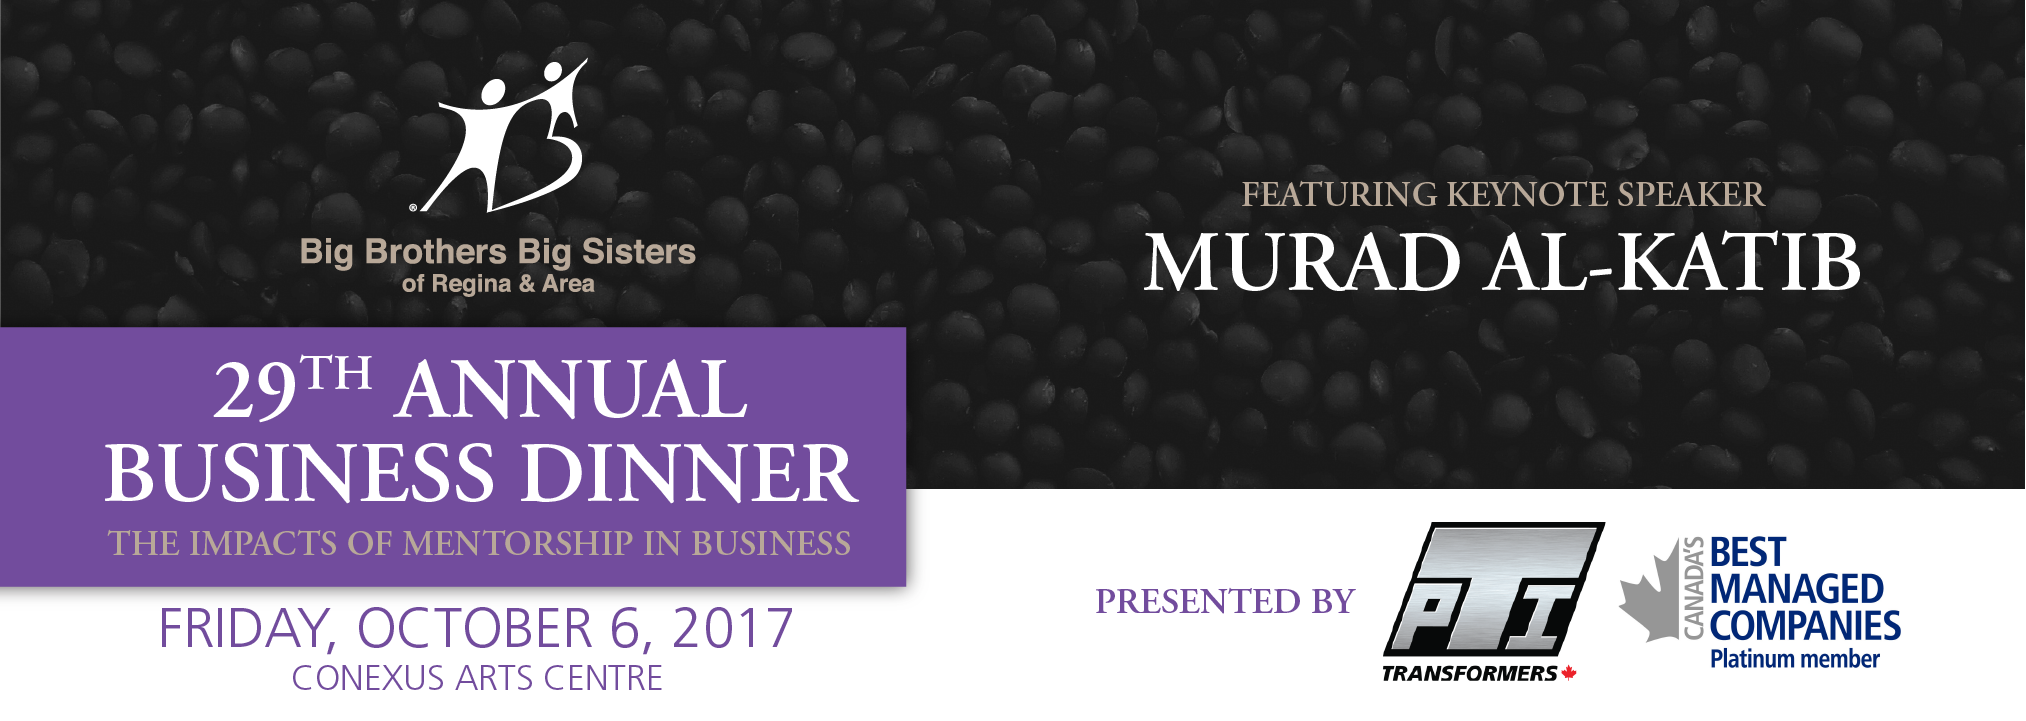 Big Brothers Big Sisters of Regina & Area 29th Annual Business Dinner - Presented by PTI